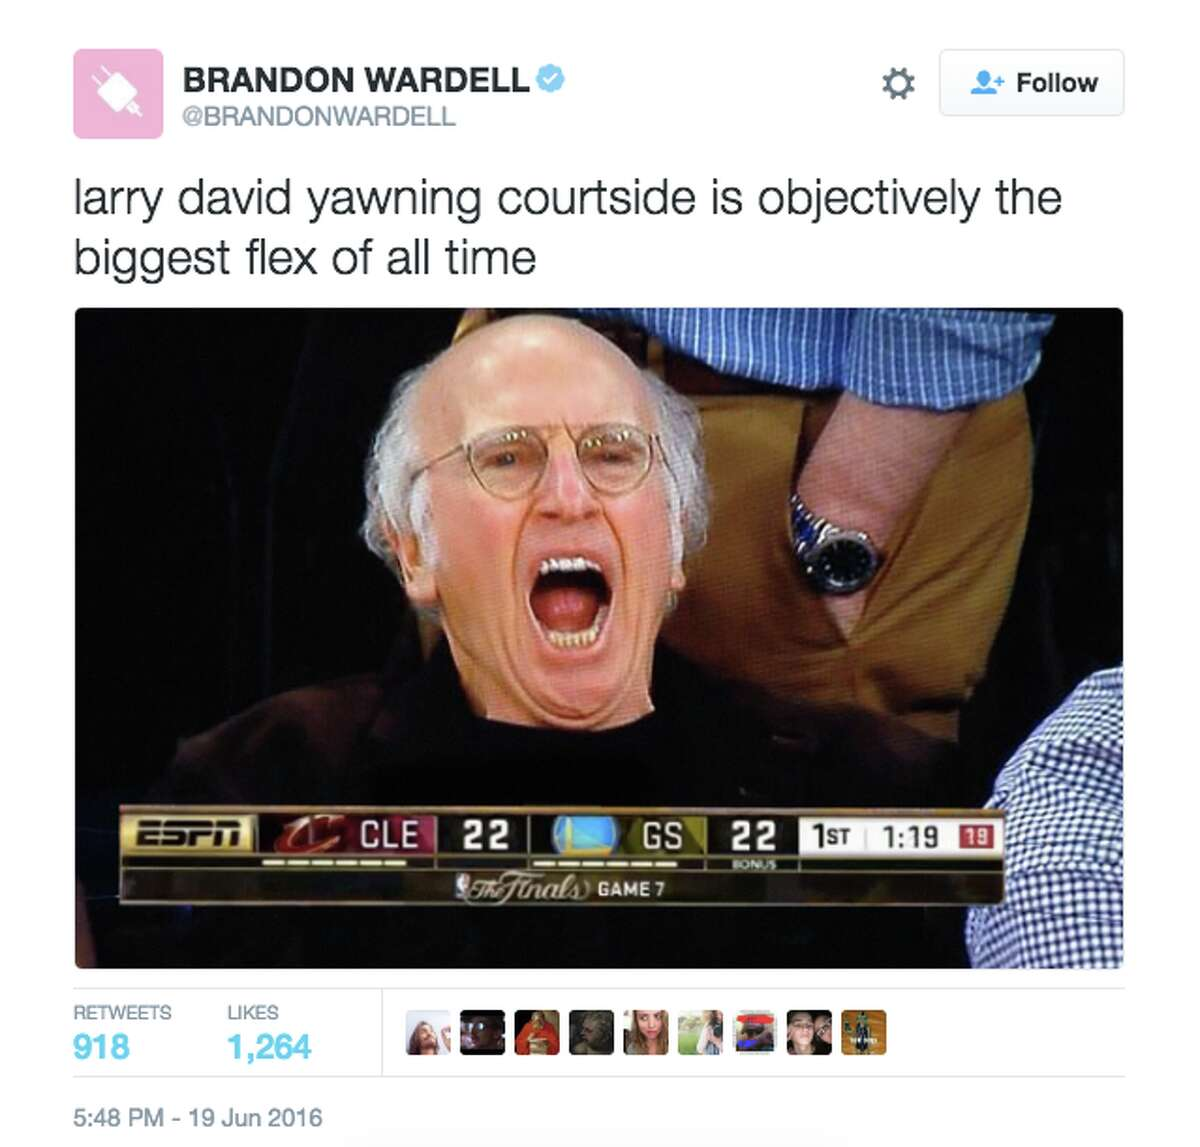 Larry Davis was courtside, but he wasn't impressed by what he saw. Or it was past his bedtime.